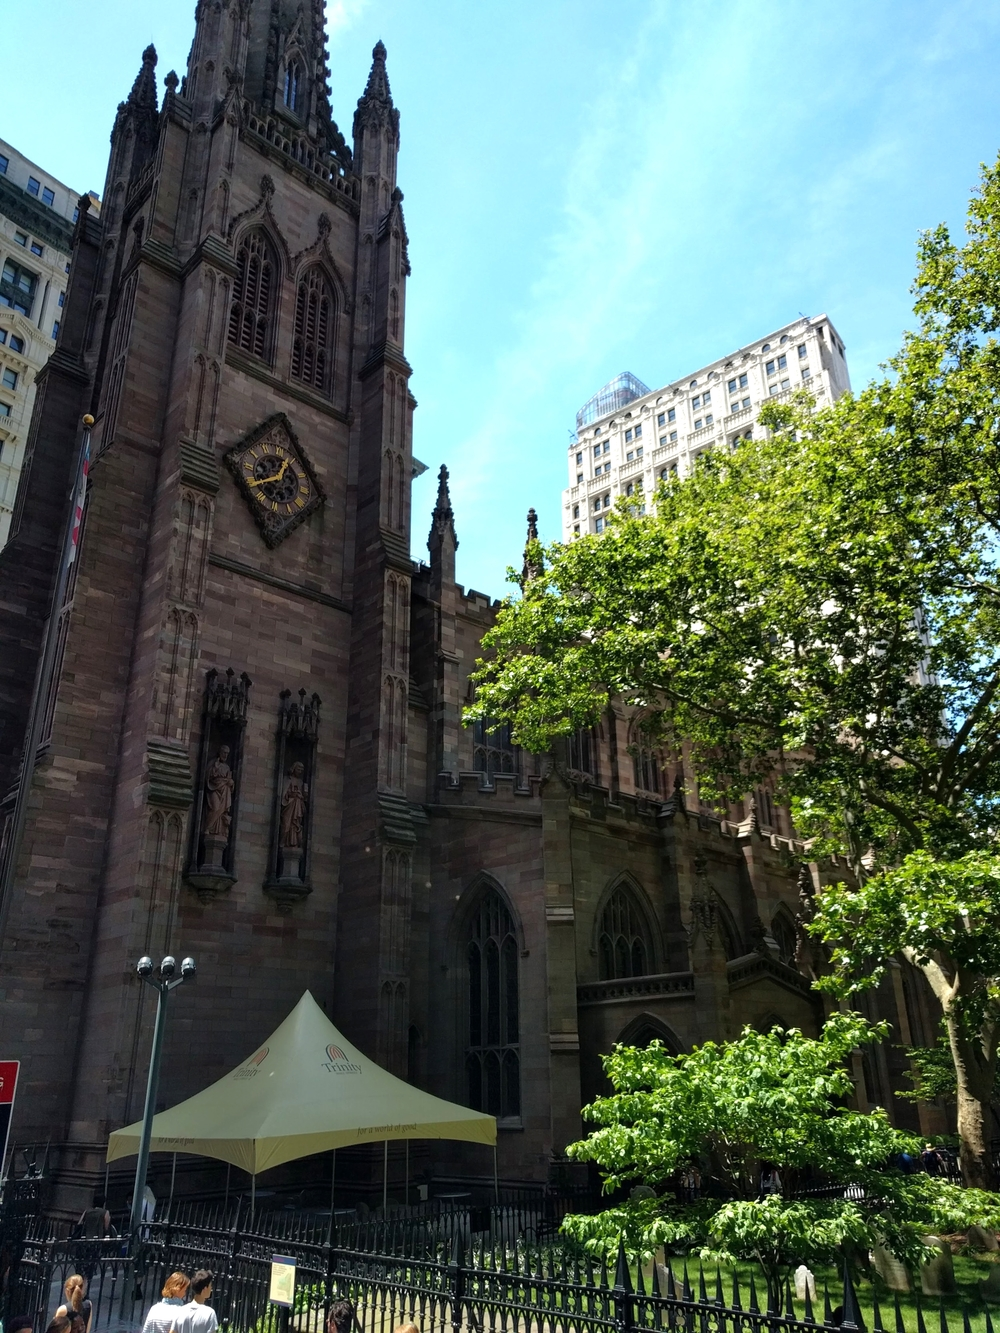 Church that withstood 9/11